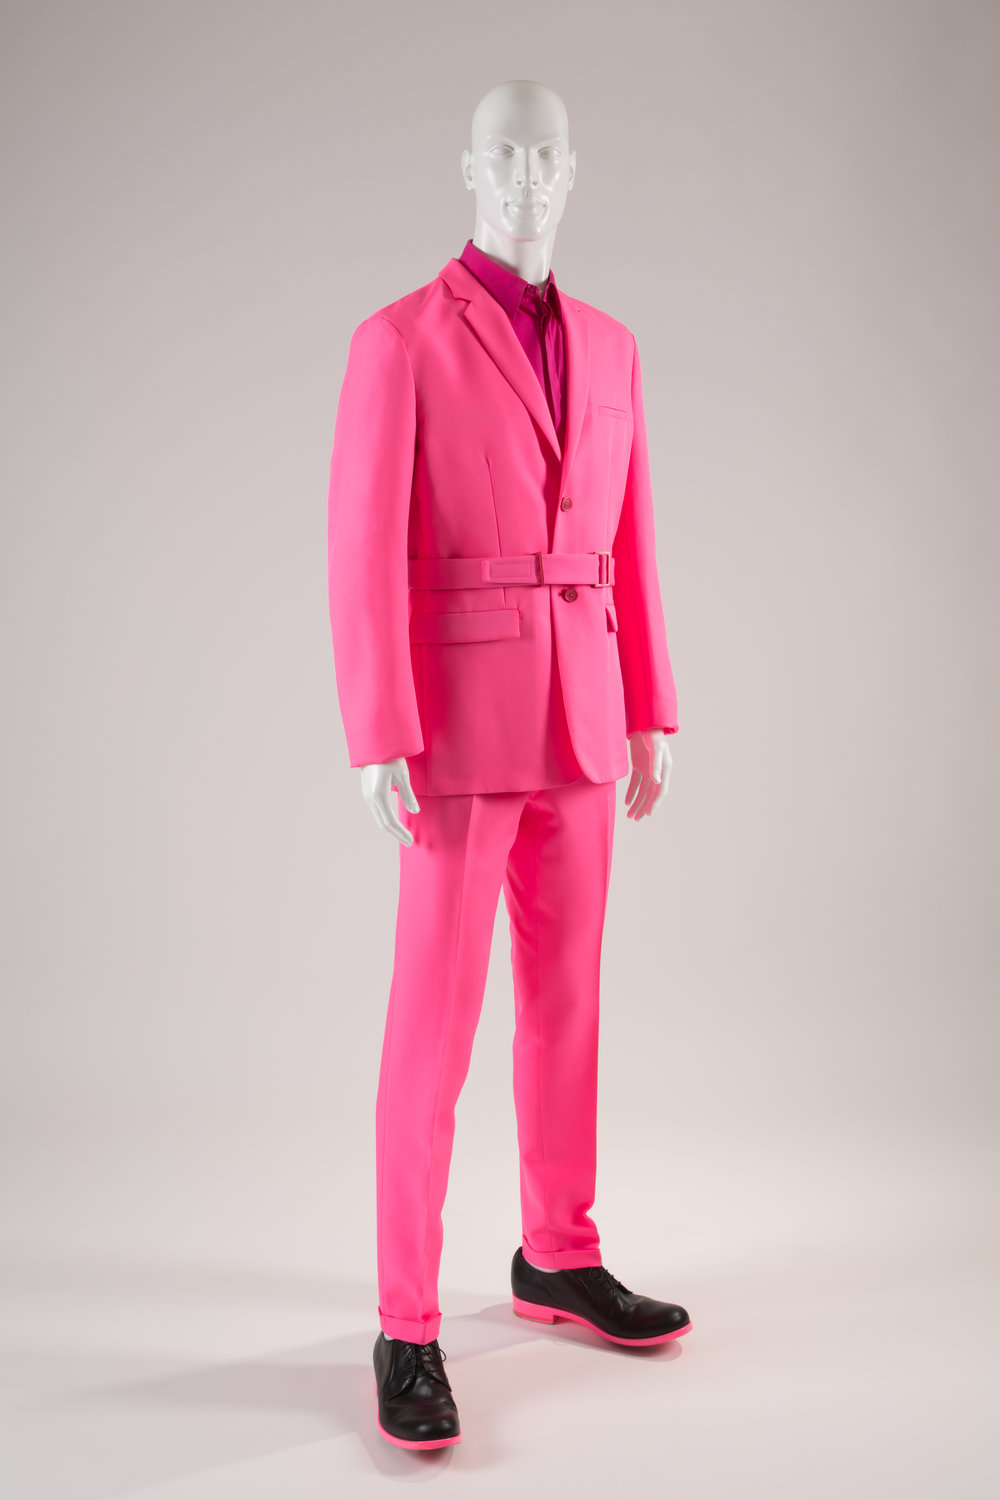 Jil Sander, suit, 2011, Germany, museum purchase. All photographs © The Museum at FIT